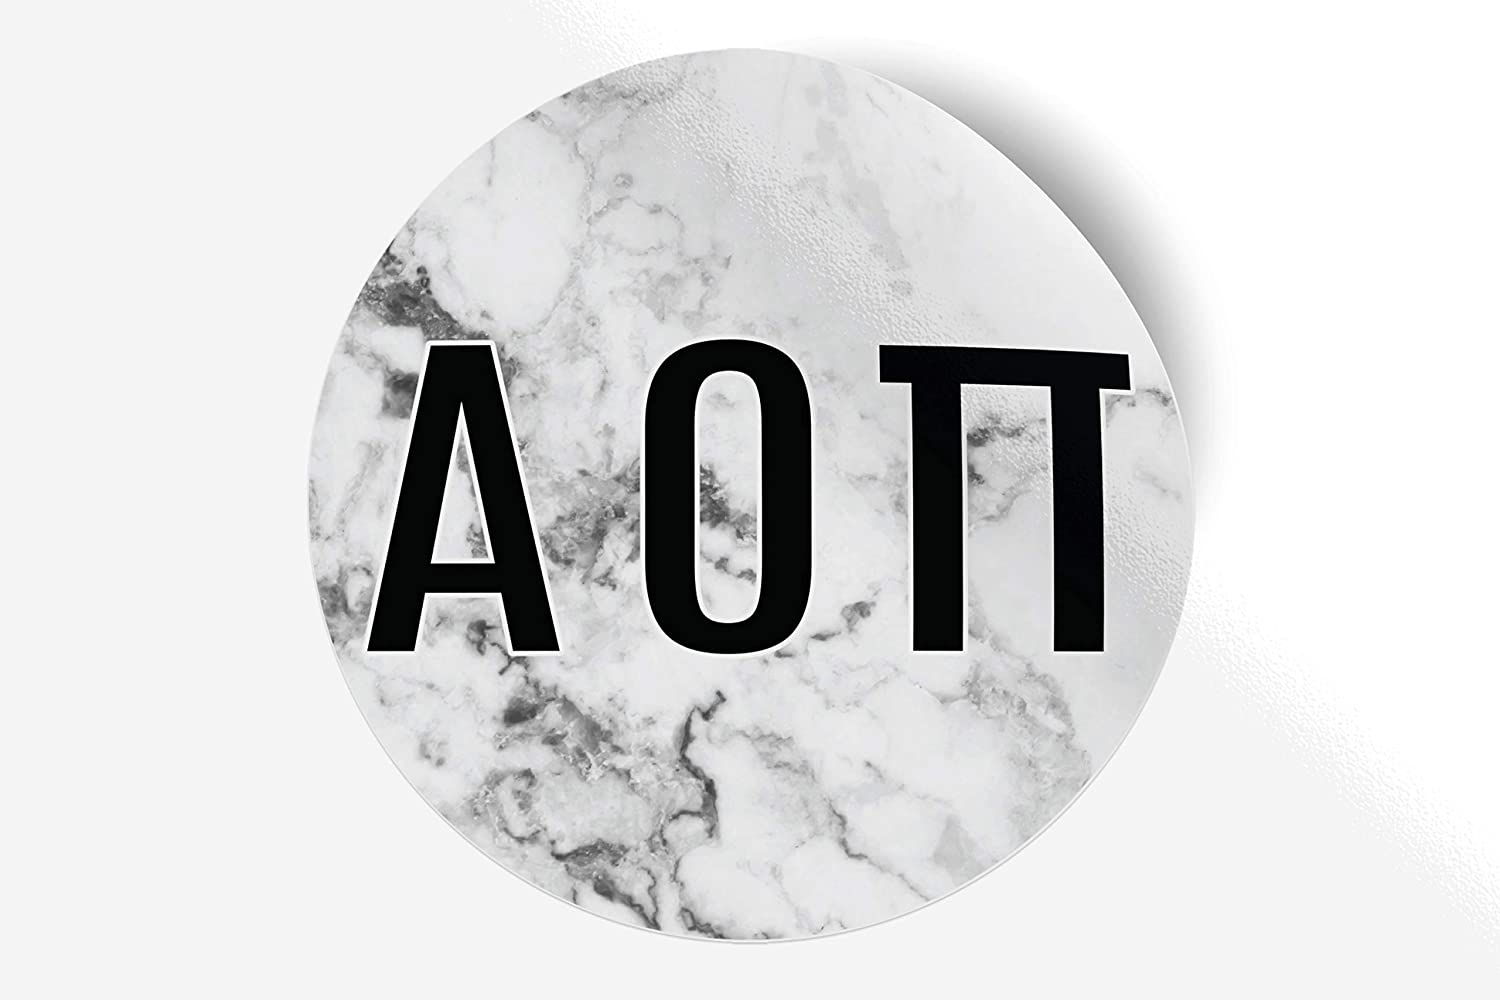 "Alpha Omicron Pi Sticker Greek Sorority Decal for Car, Laptop, Windows, Officially Licensed Product, Monogram Design 5"" x 5"" - White Marble"